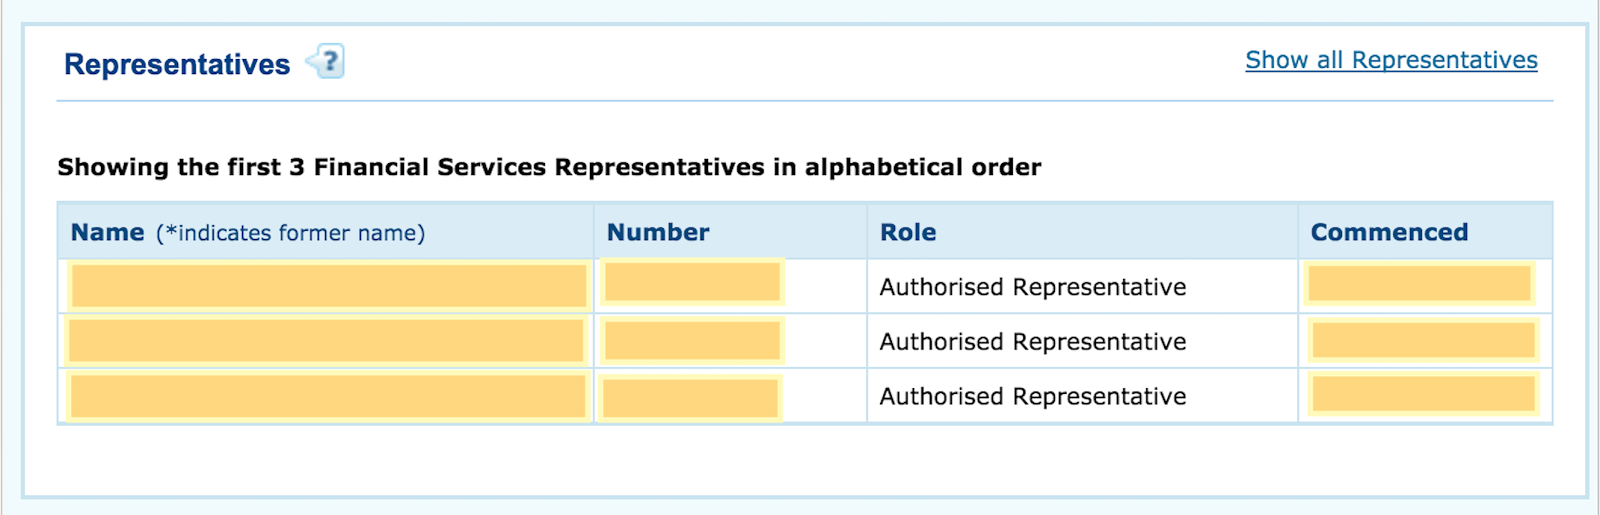 5 - Example 3 - Authorized Representatives.png